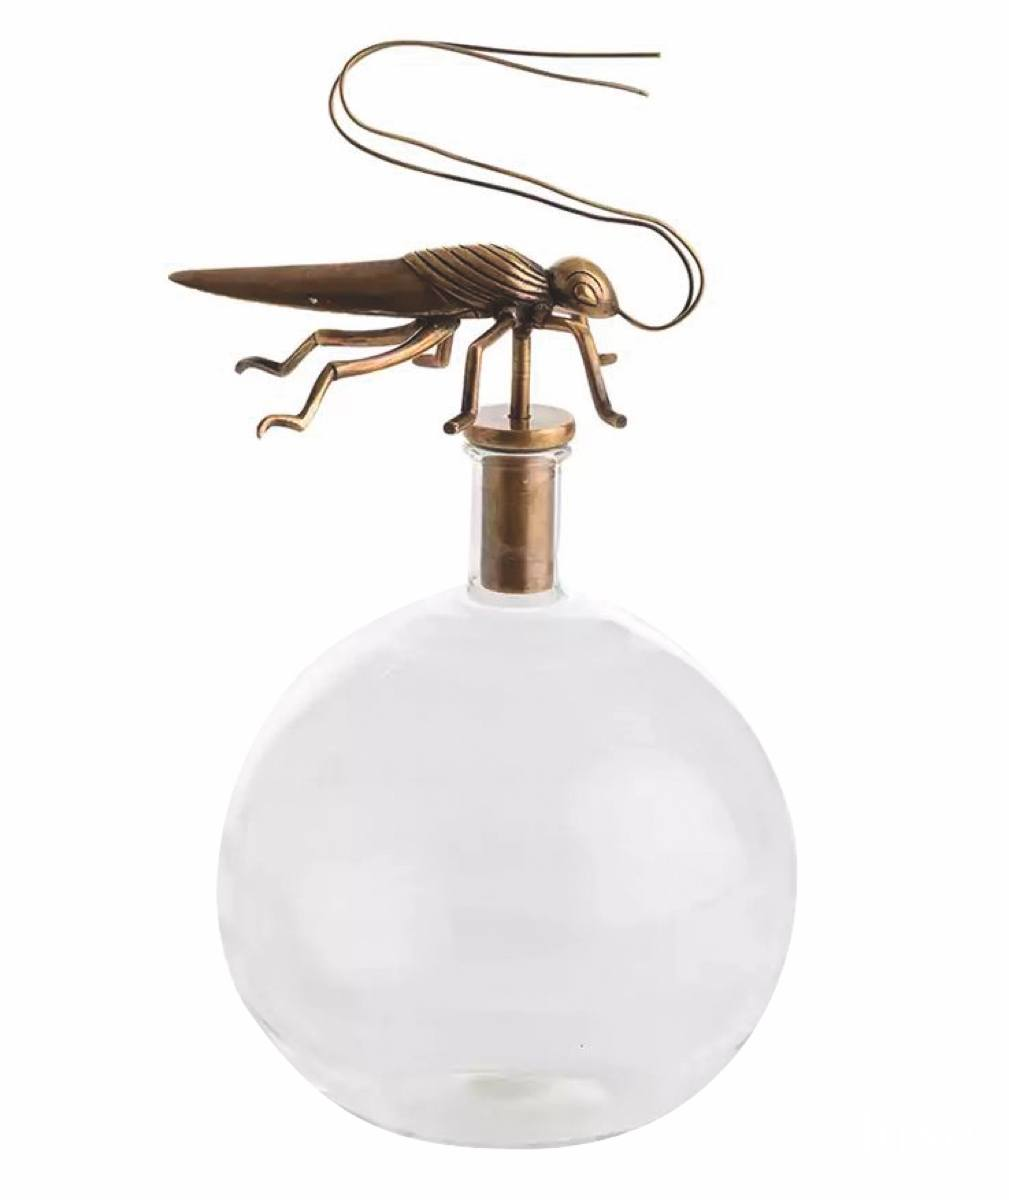 LX_COM18_InspirationFound_SkipperGrasshopperDecanter